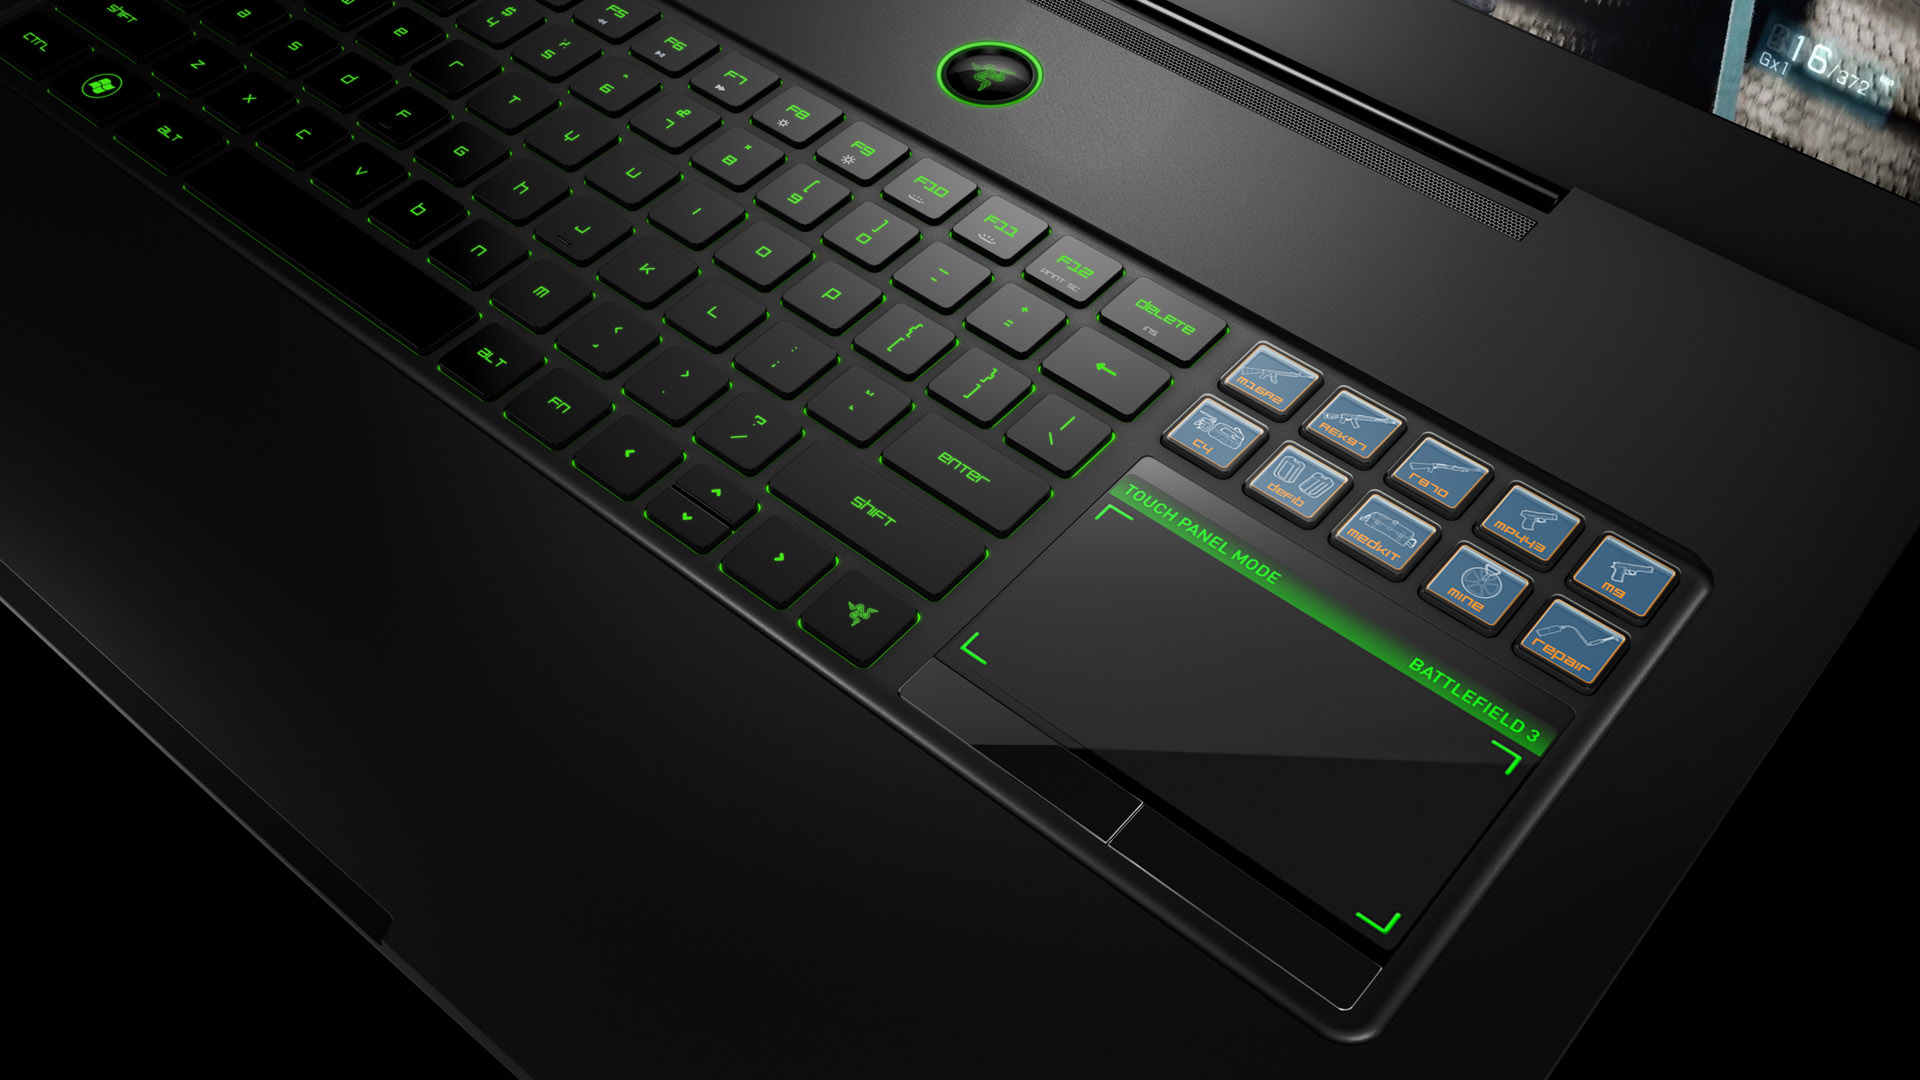 razer_blade_gaming_laptop_09